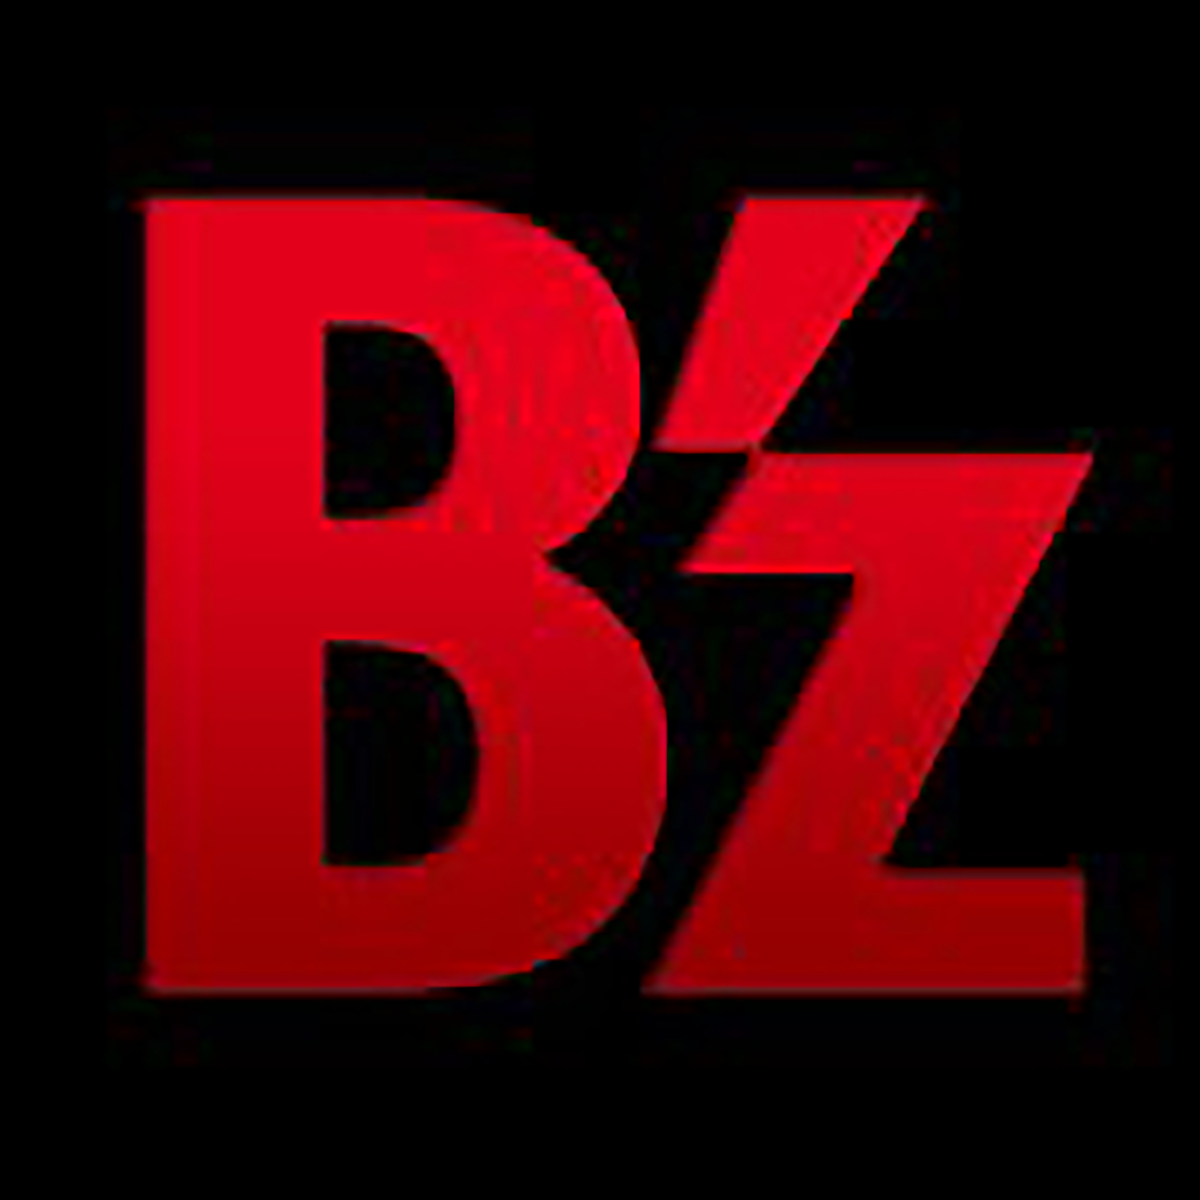 B'z Official Facebookのロゴ